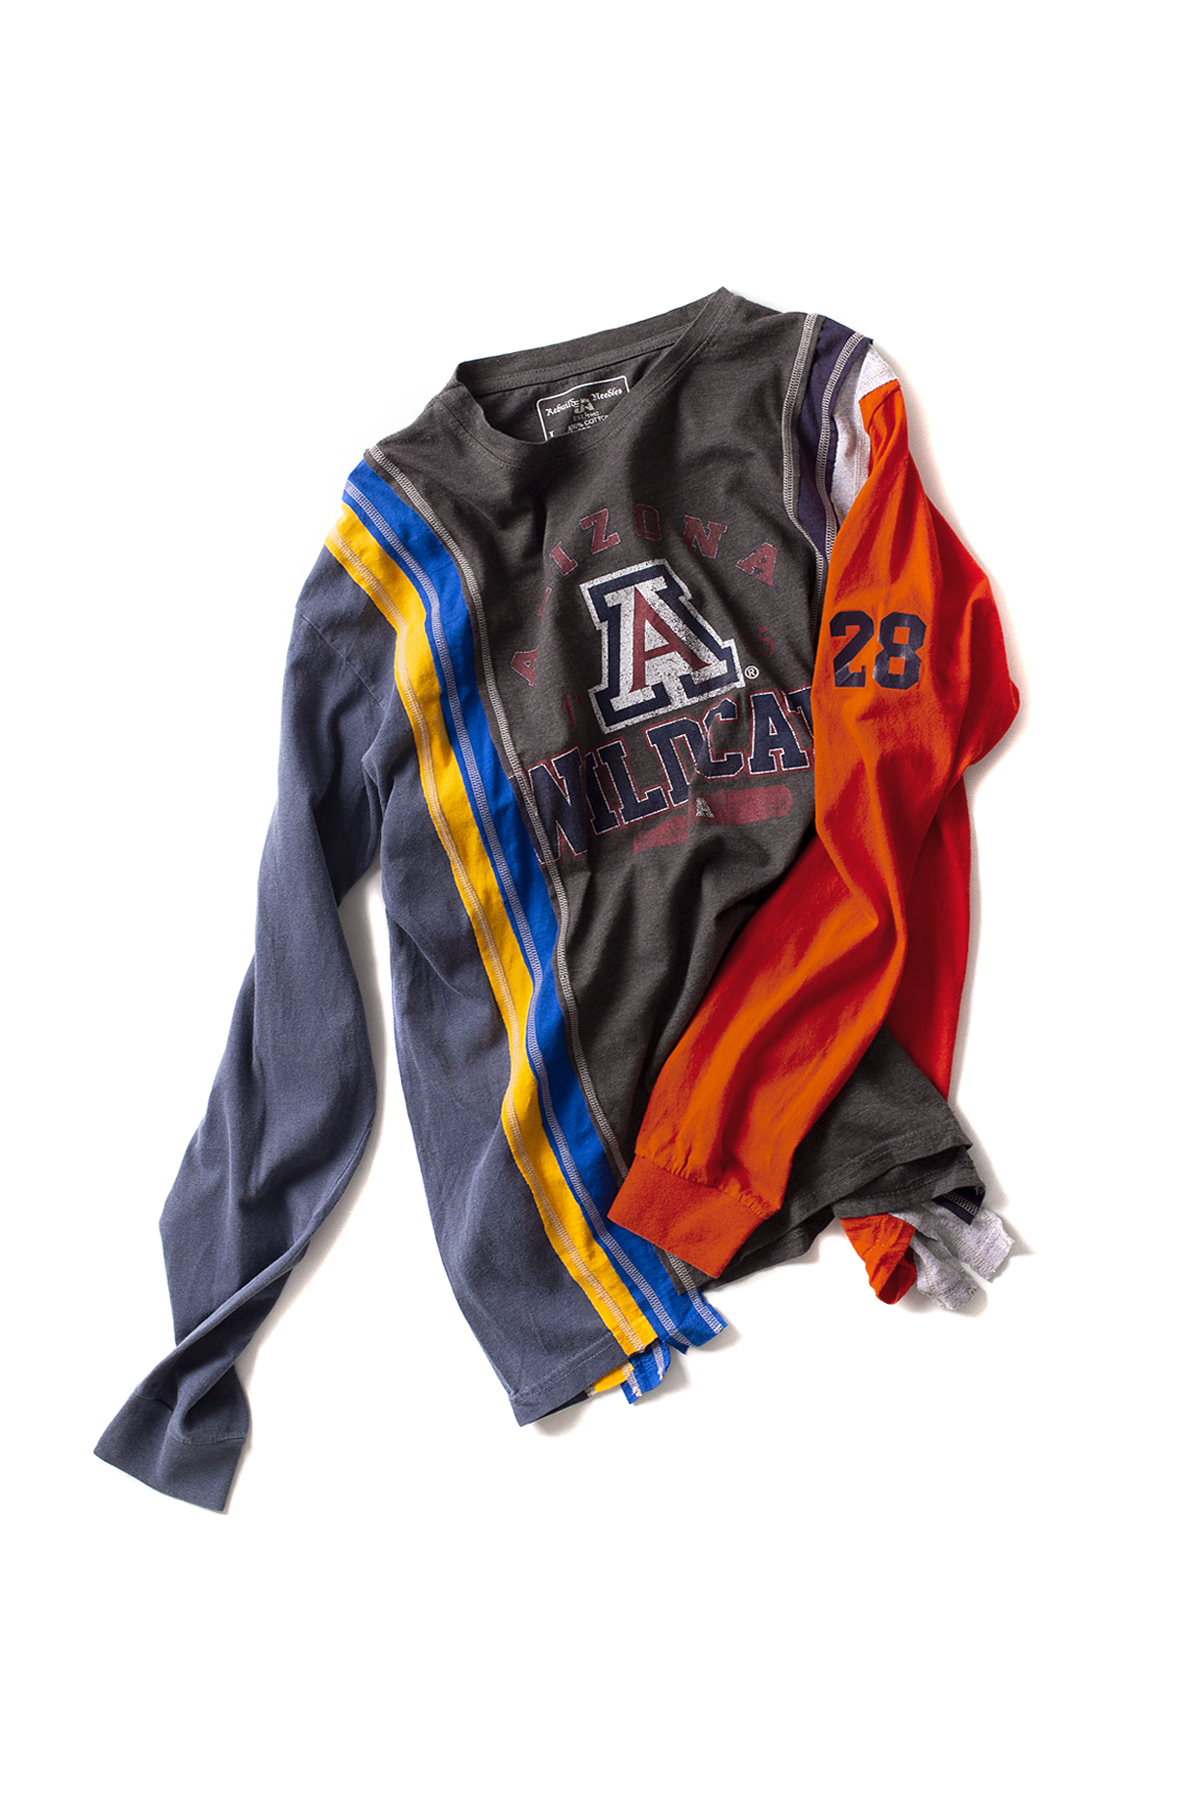 NEEDLES : Rebuild By NEEDLES 7Cuts College L/S Tee (L-C)